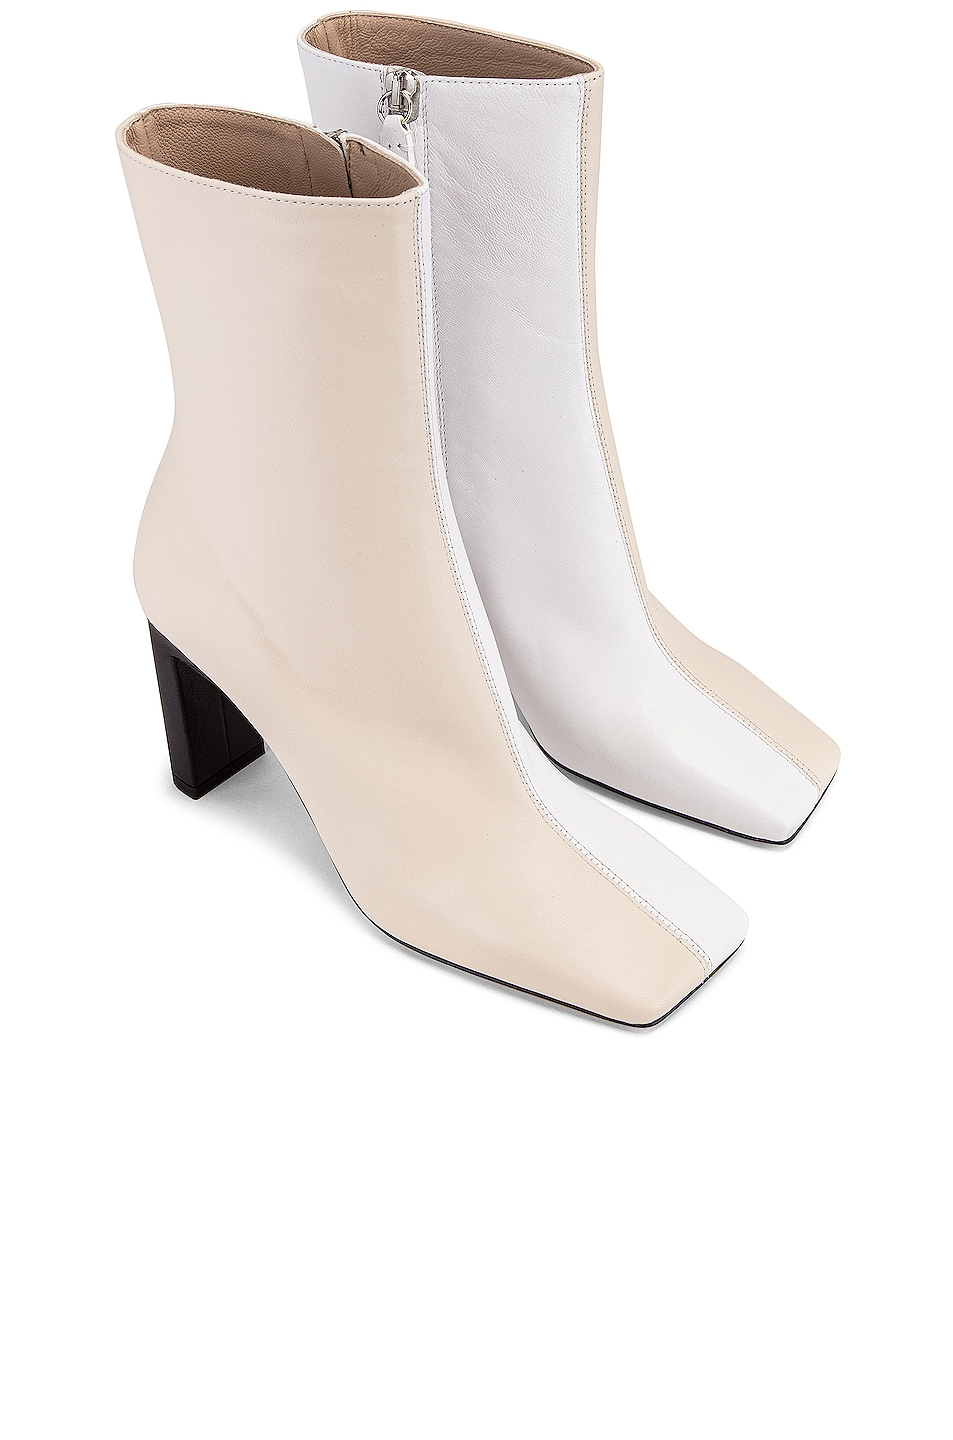 Image 1 of Wandler Isa Boots in Buttercream